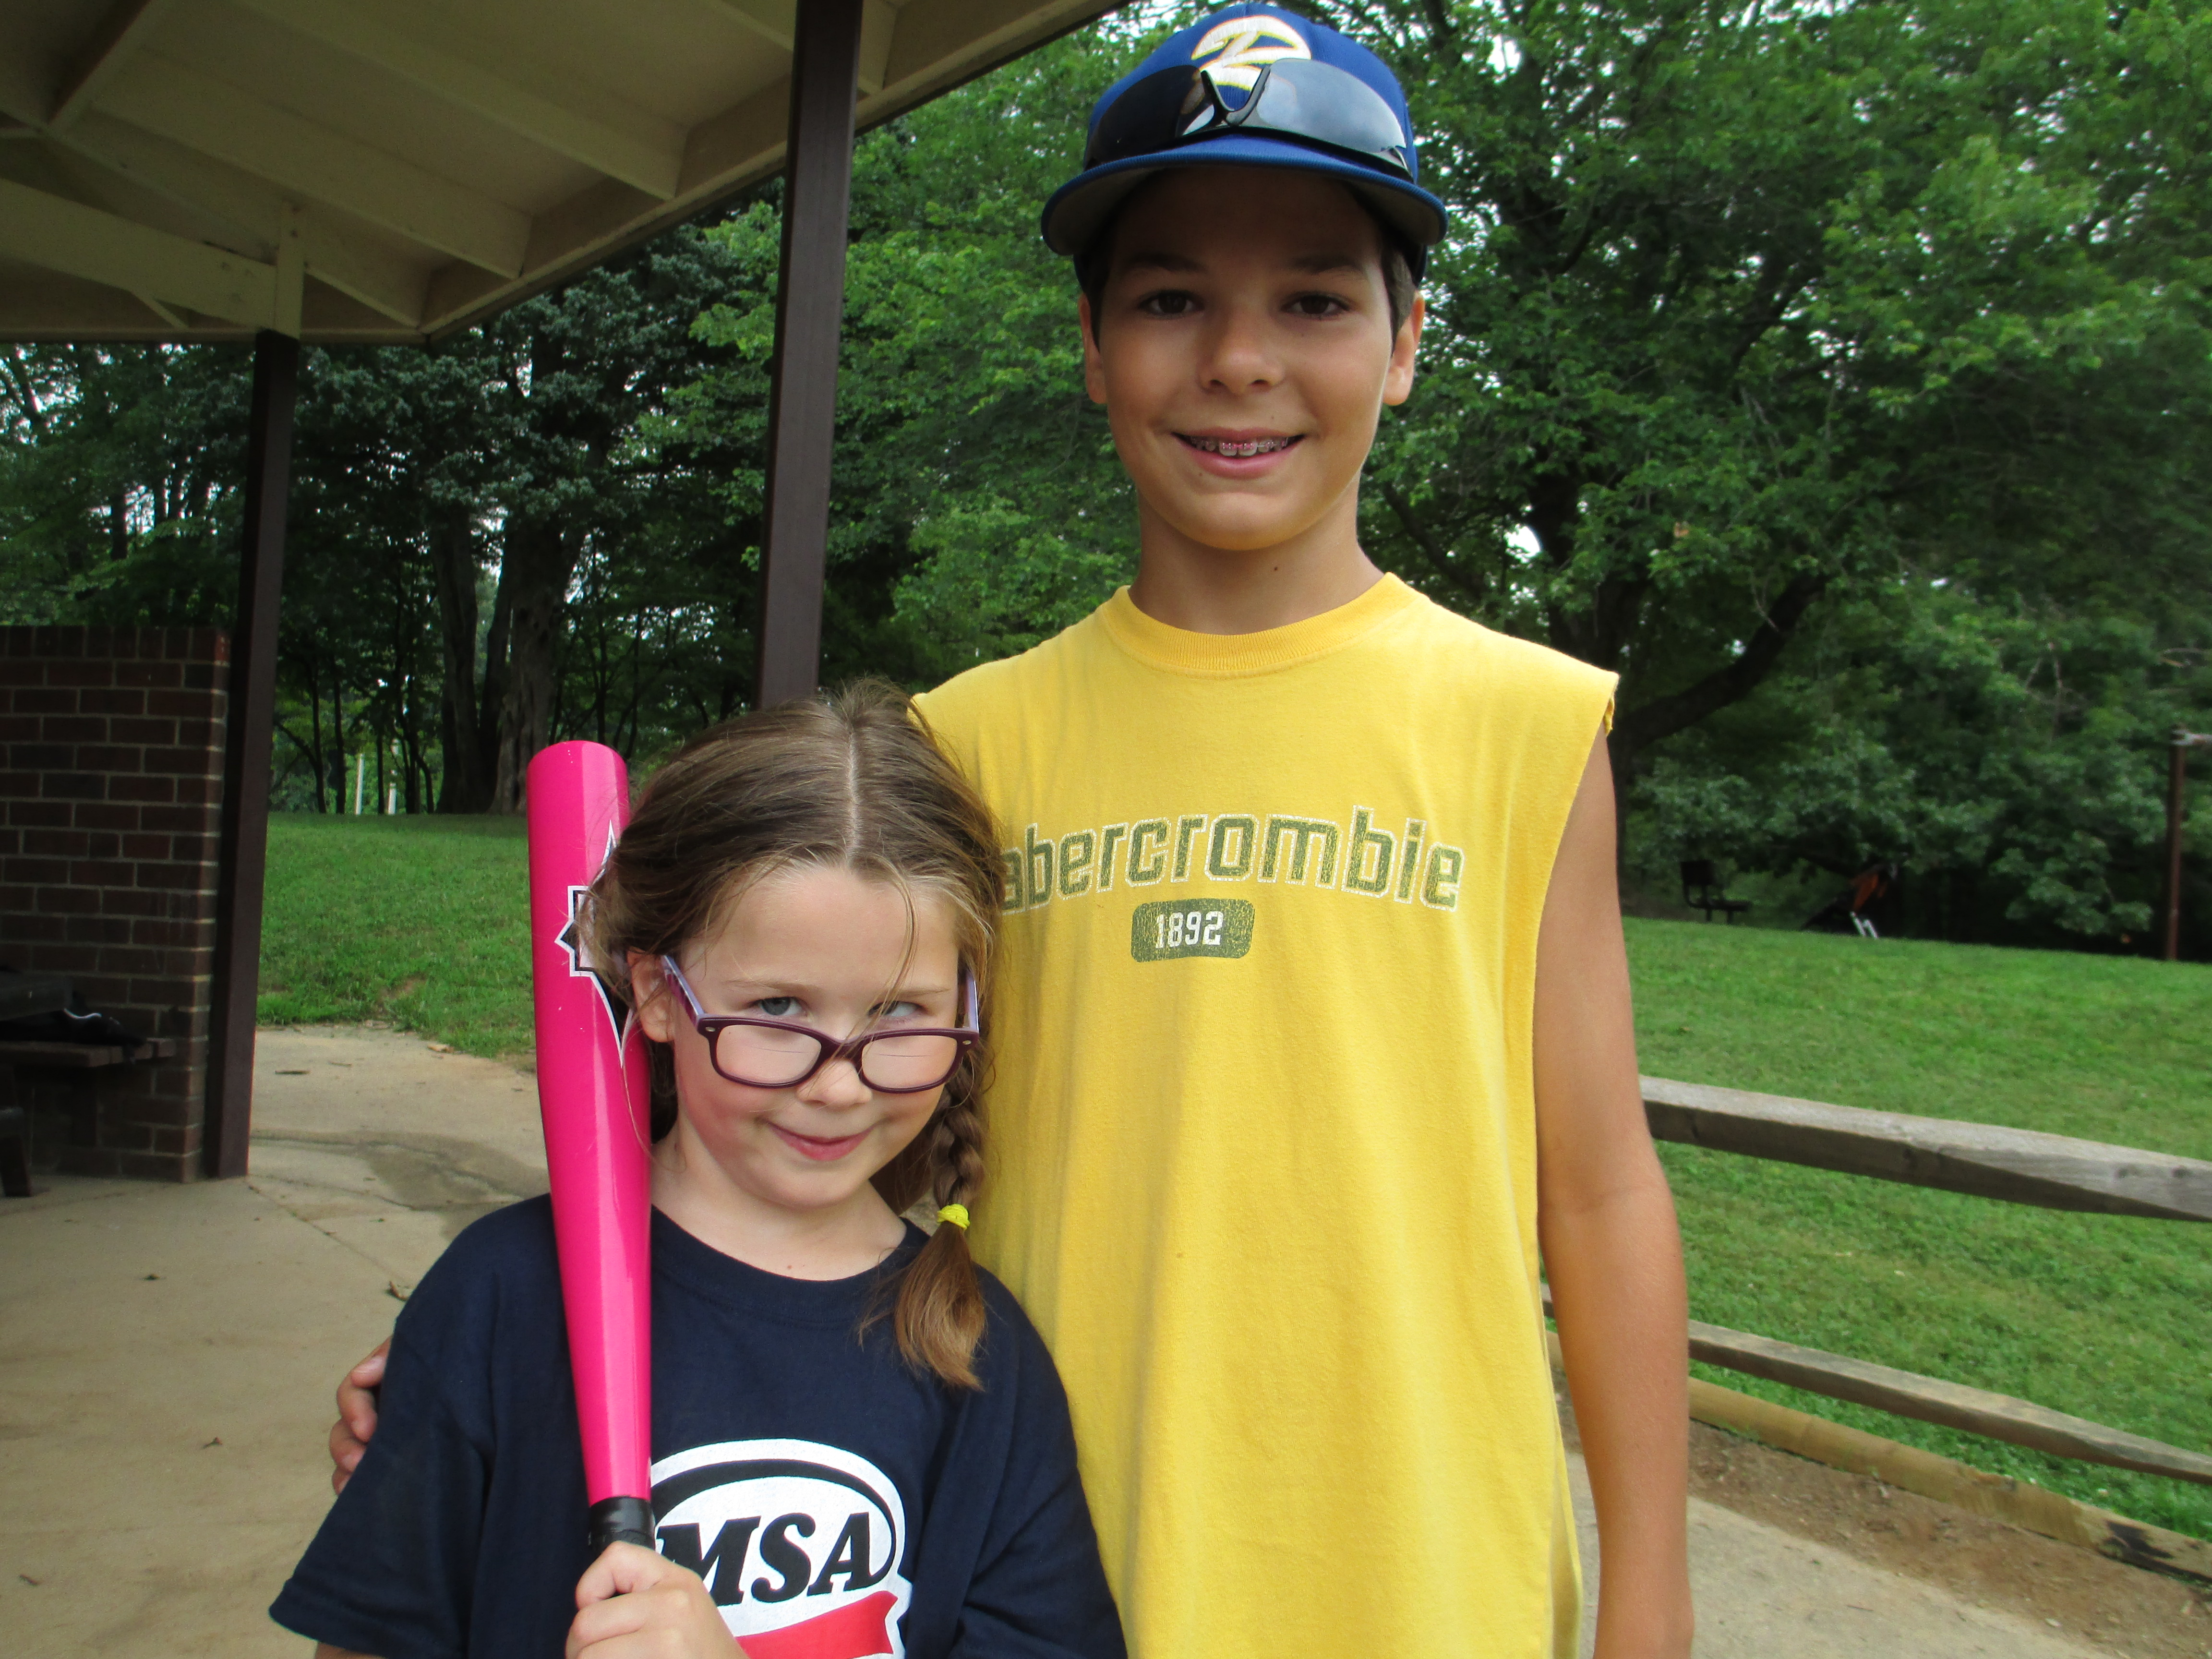 baseball boy and girl smiling camps13.jpg